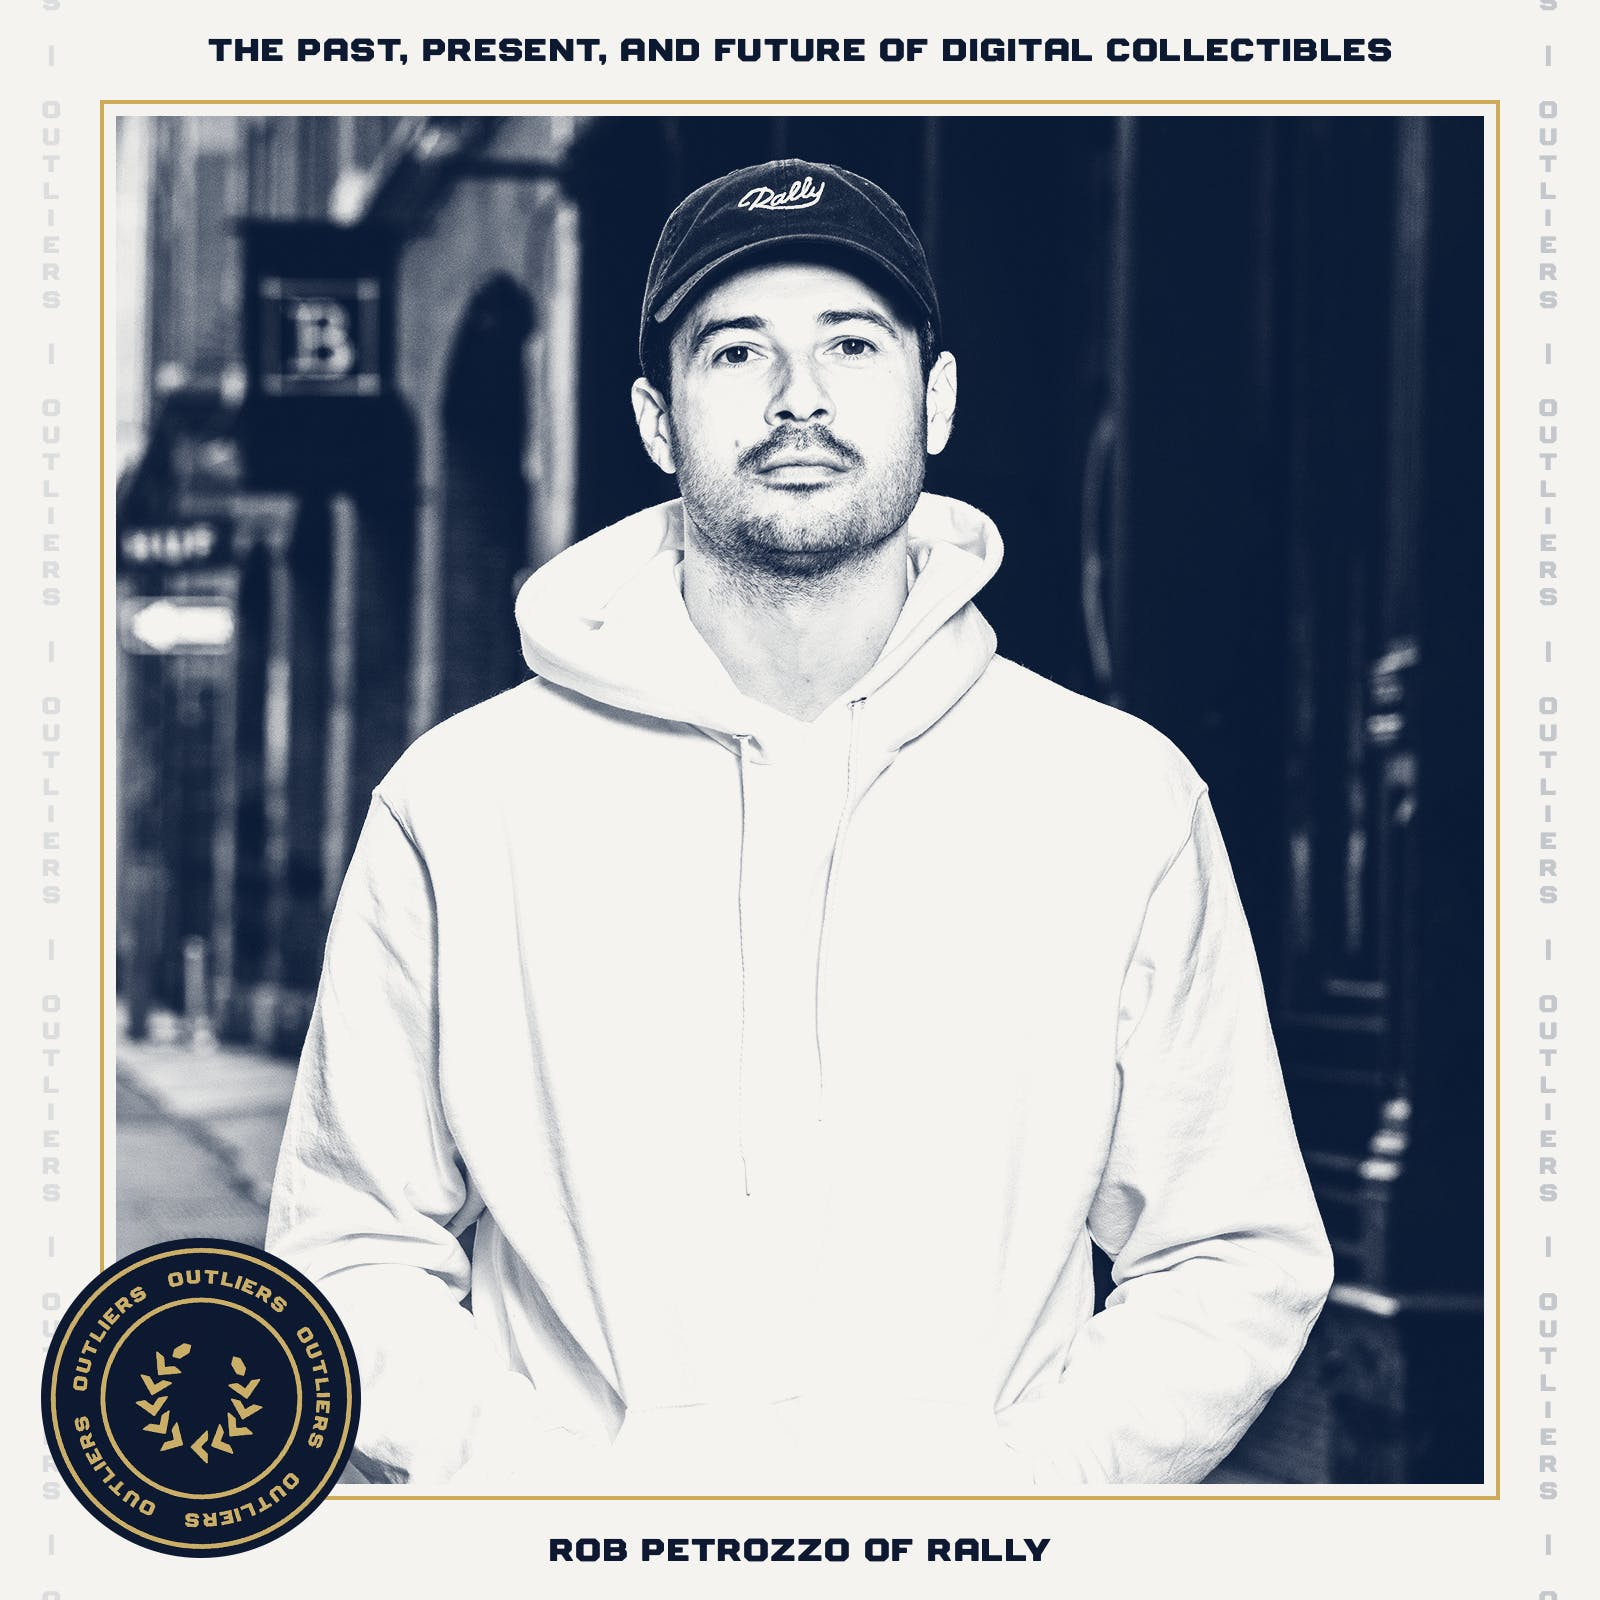 #27 Rob Petrozzo of Rally: The Past, Present, and Future of Digital Collectibles